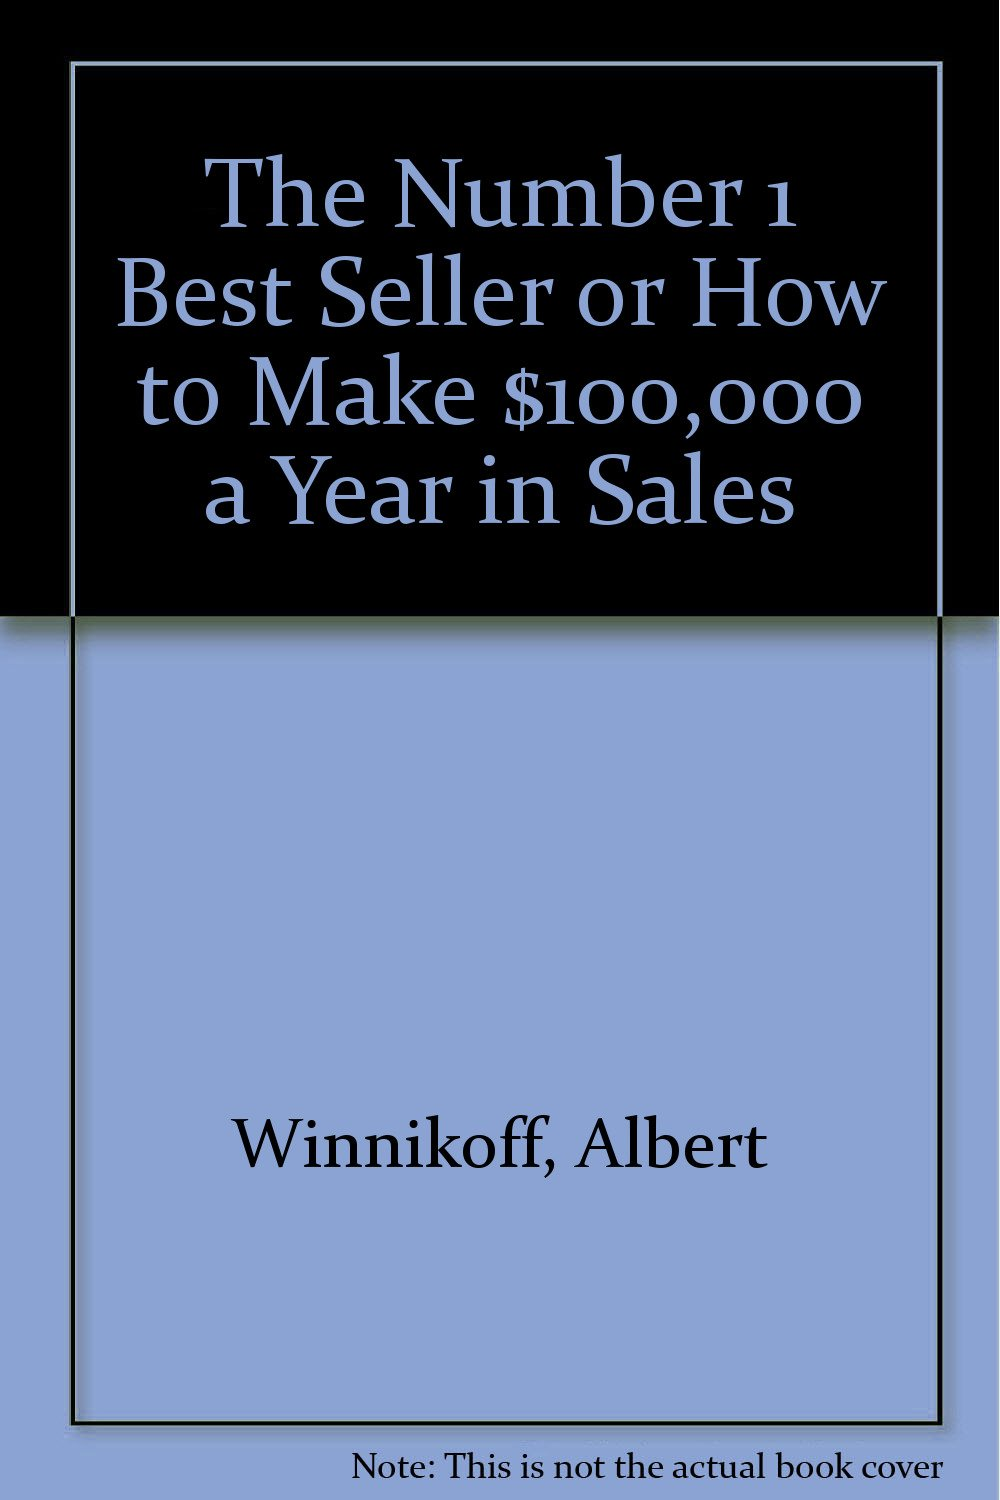 The Number 1 Best Seller: Or How to Make $100,000 a Year in Sales